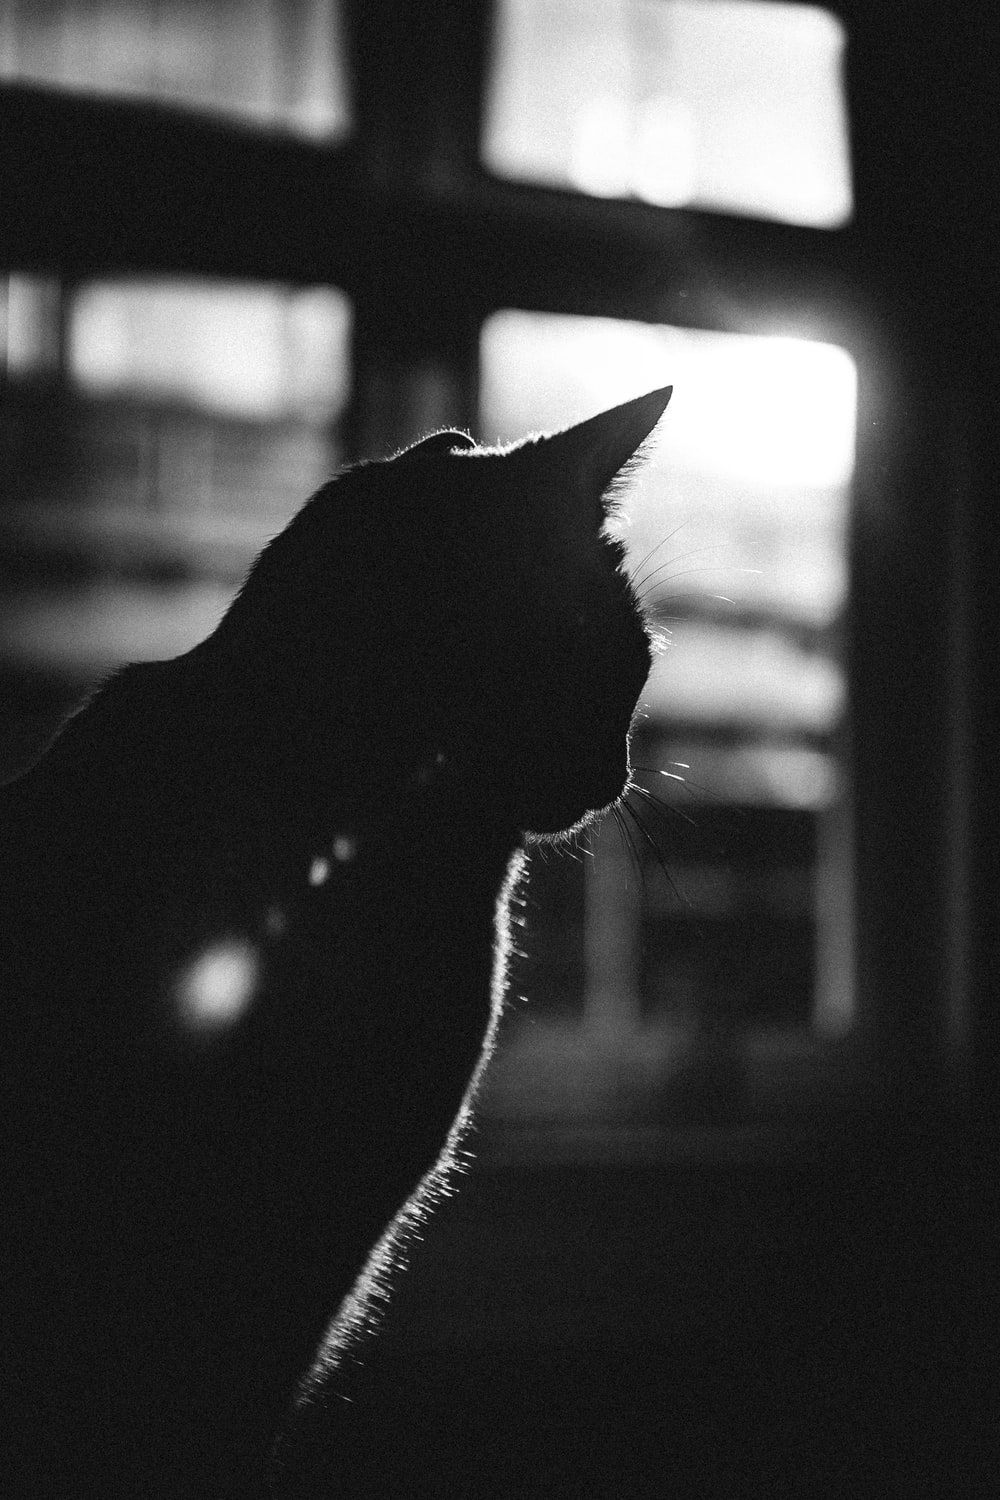 silhouette of cat near window